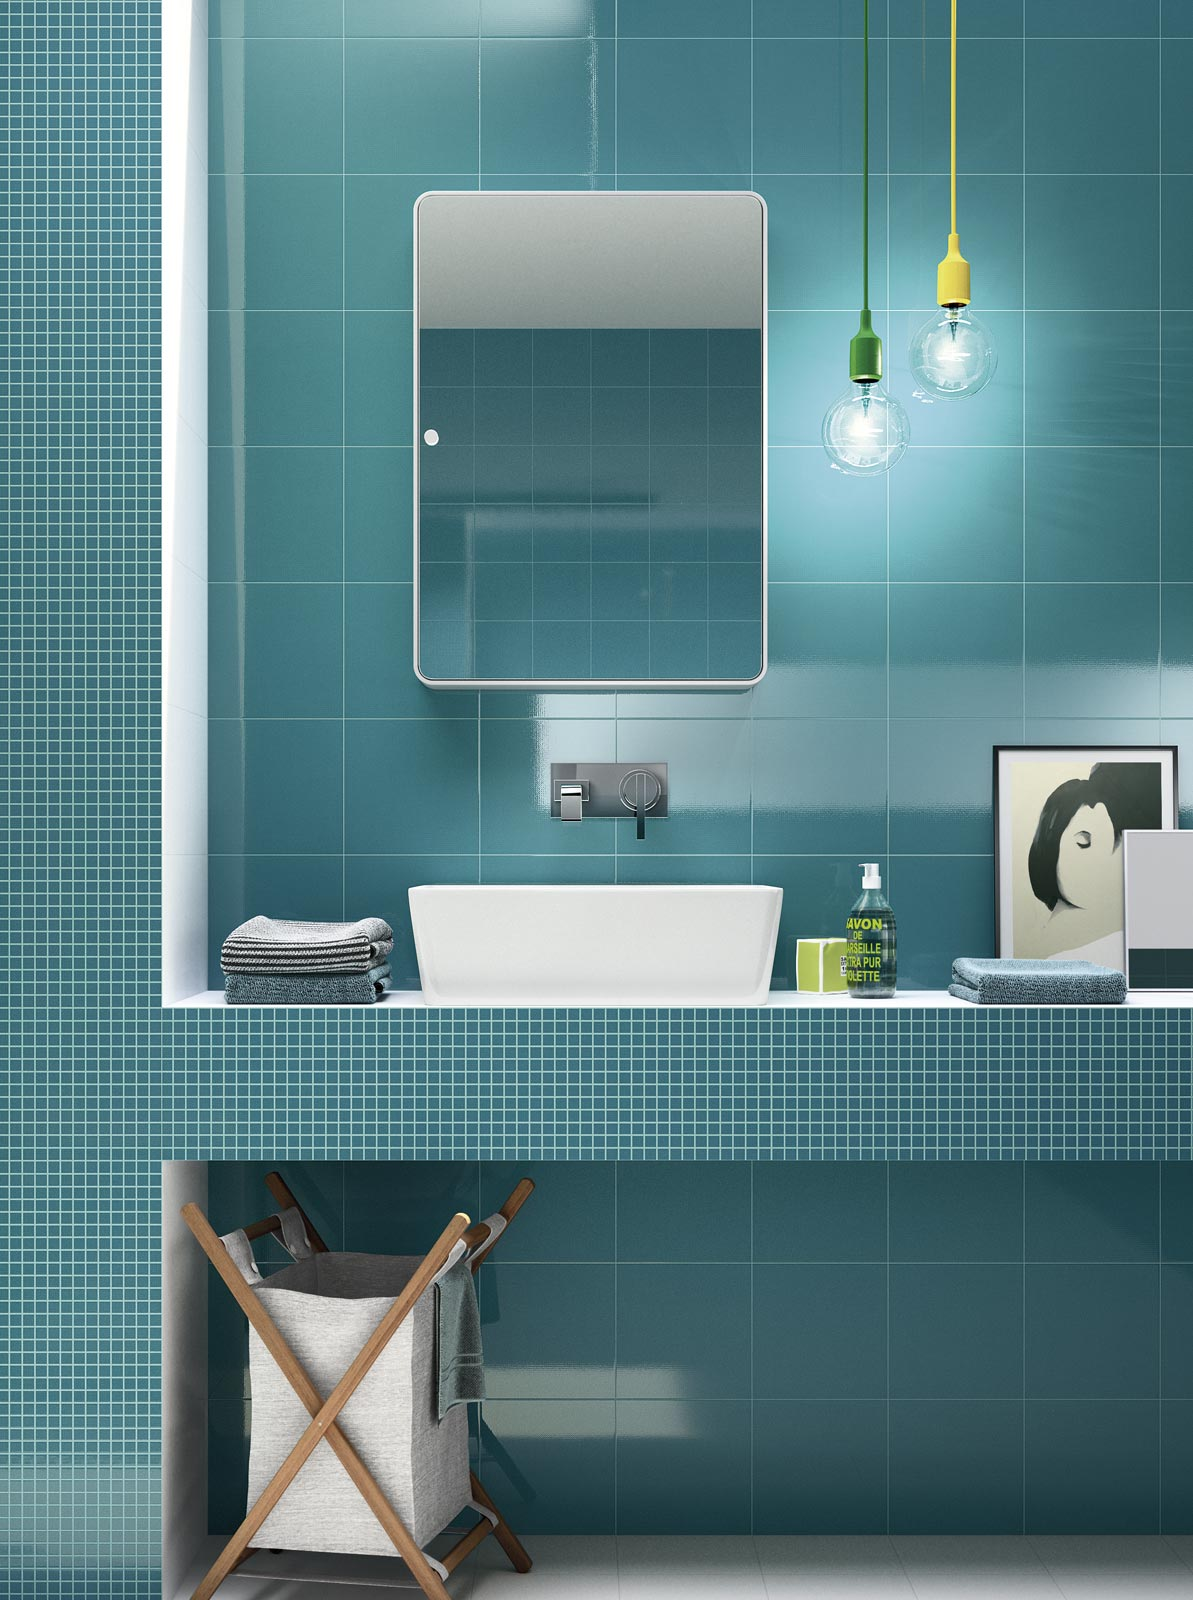 Movida - wall tiles for bathroom and kitchen | Ragno